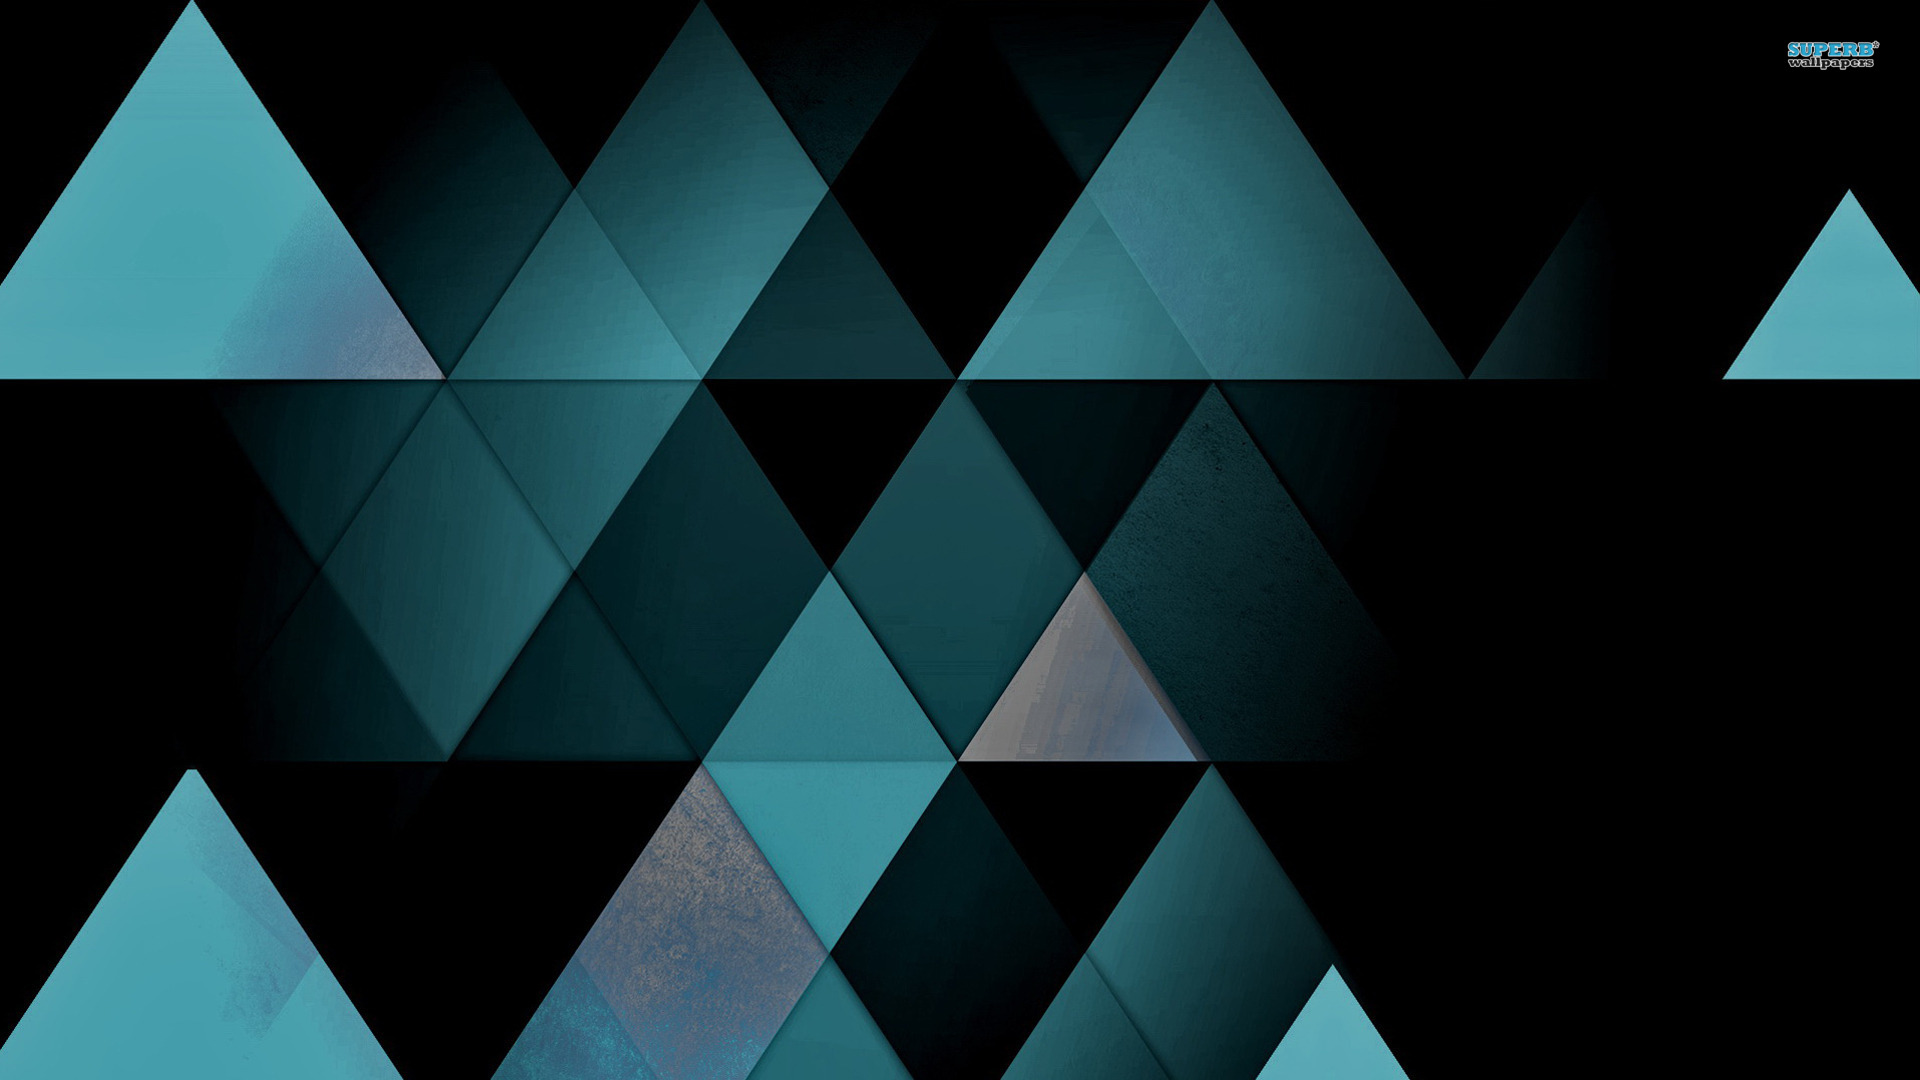 Mosaic triangles wallpaper 1920x1080 jpg